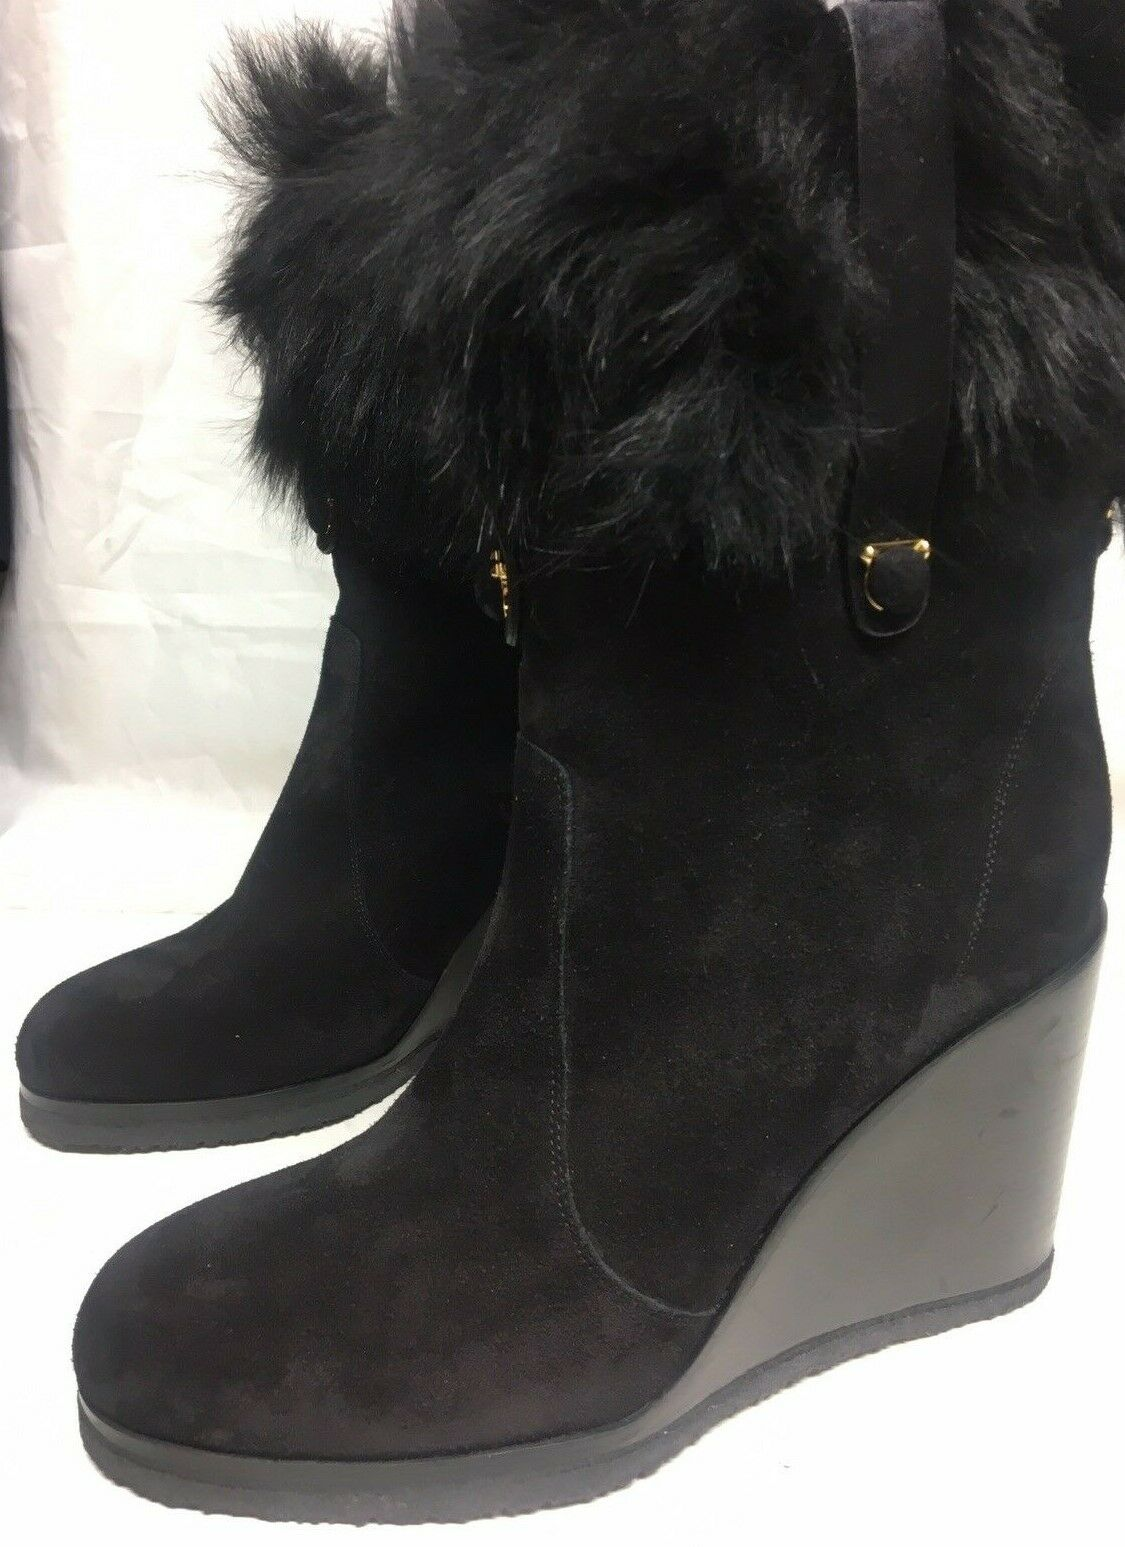 Salvatore Ferragamo Black Suede Fur Wedges 7.5B